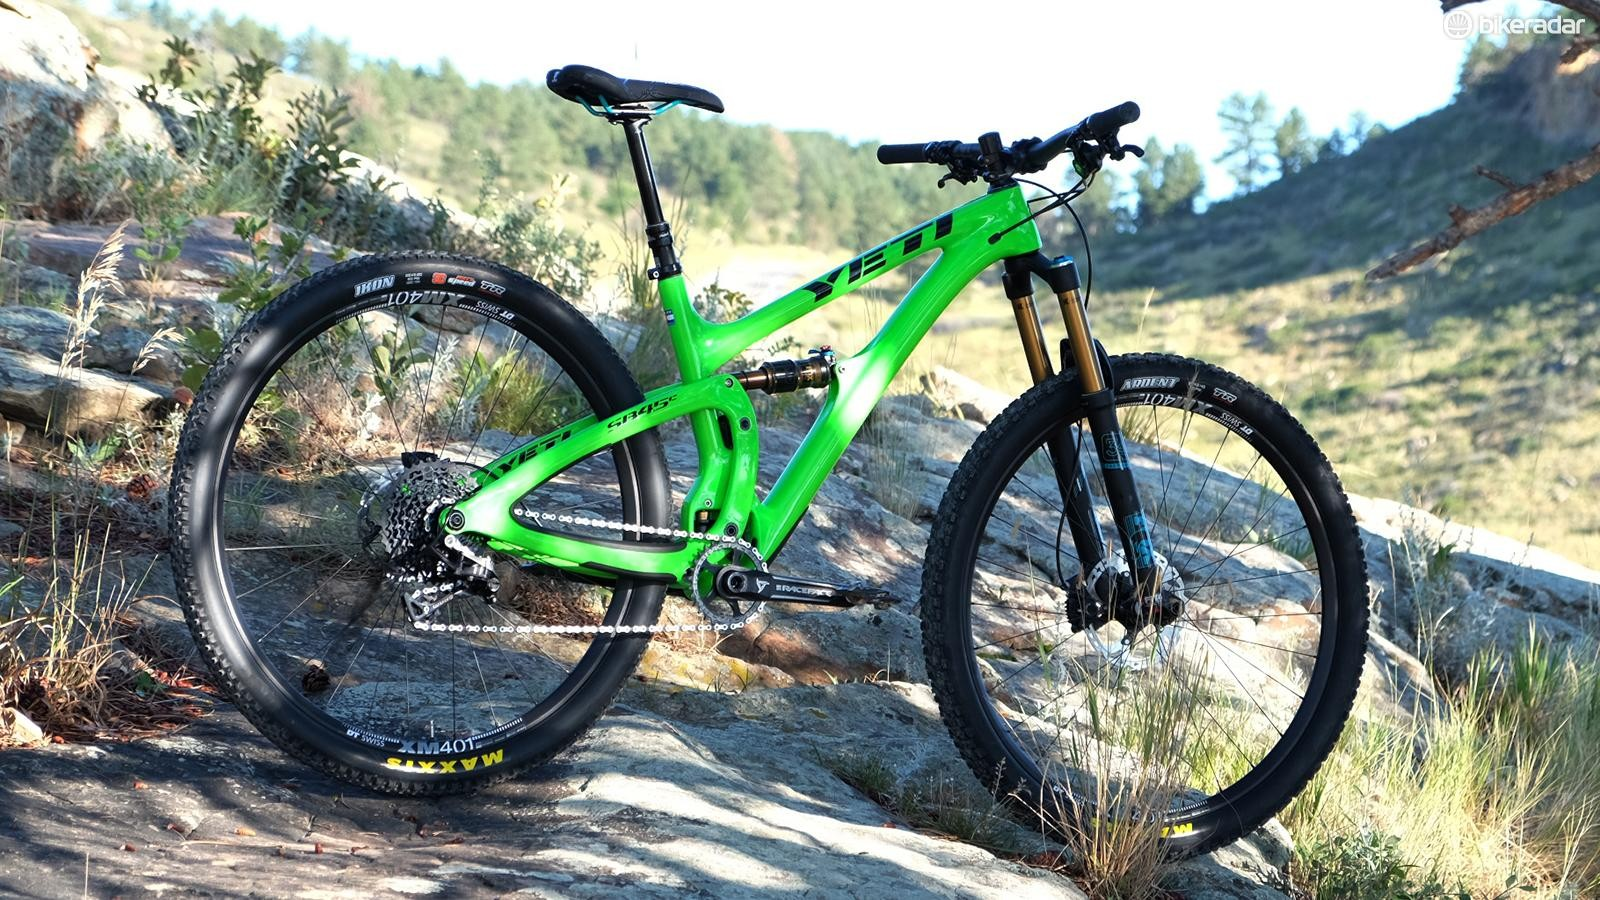 The Yeti SB4.5c is a short travel trail bike with a lot of potential